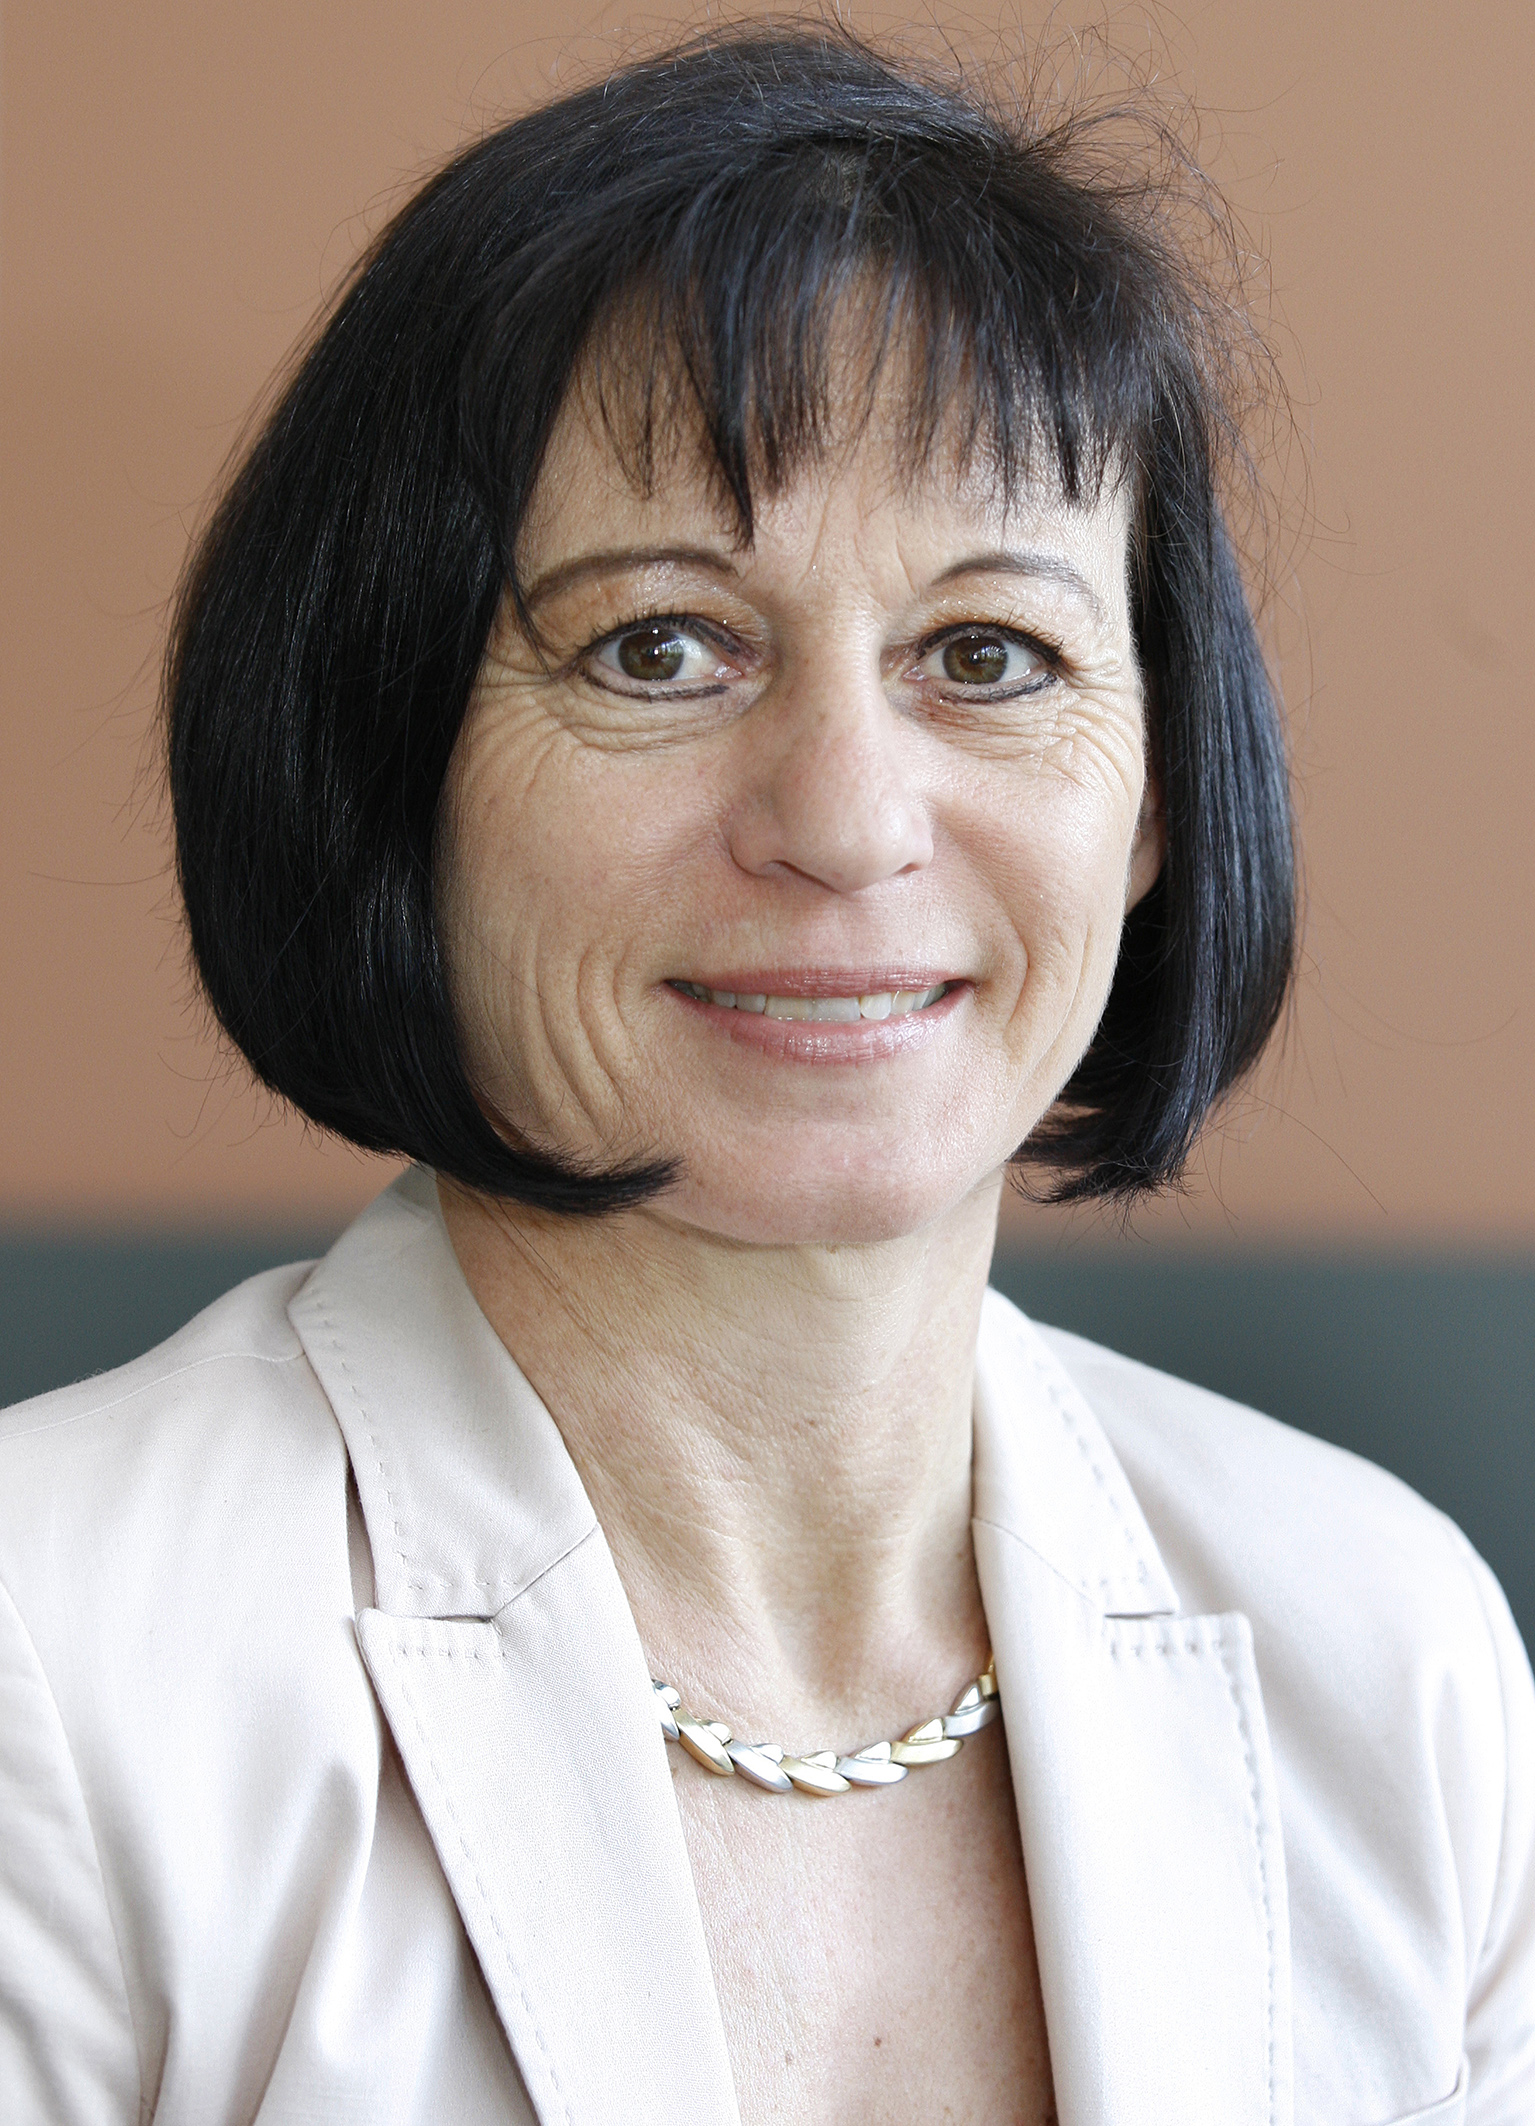 Vera Winter, responsible at Robert Bosch GmbH for the acquisition and retention of young talent